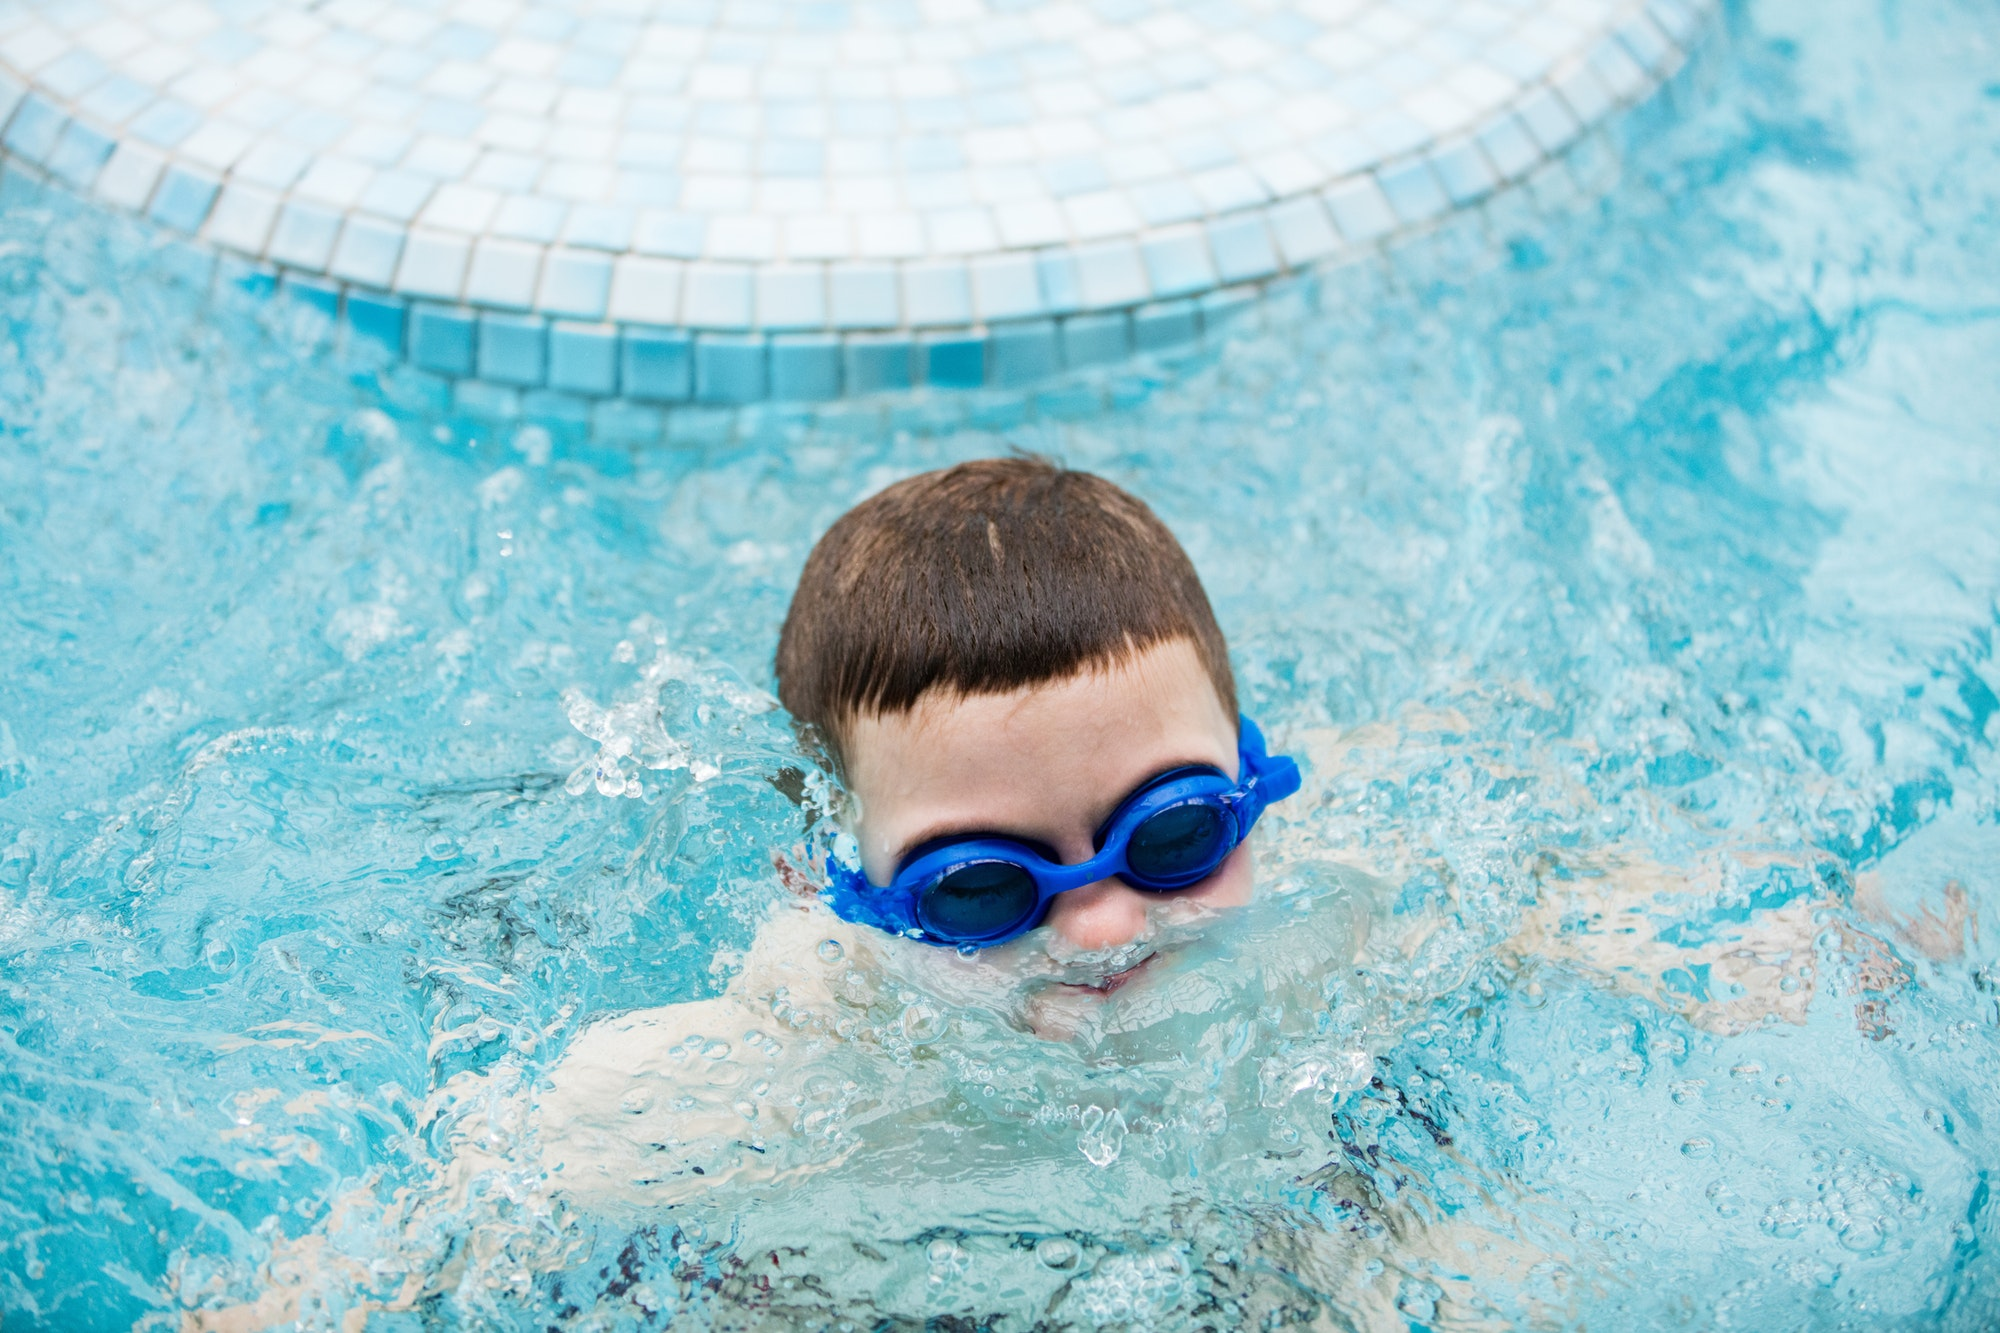 Kid in a swimming pool surfacing out of water